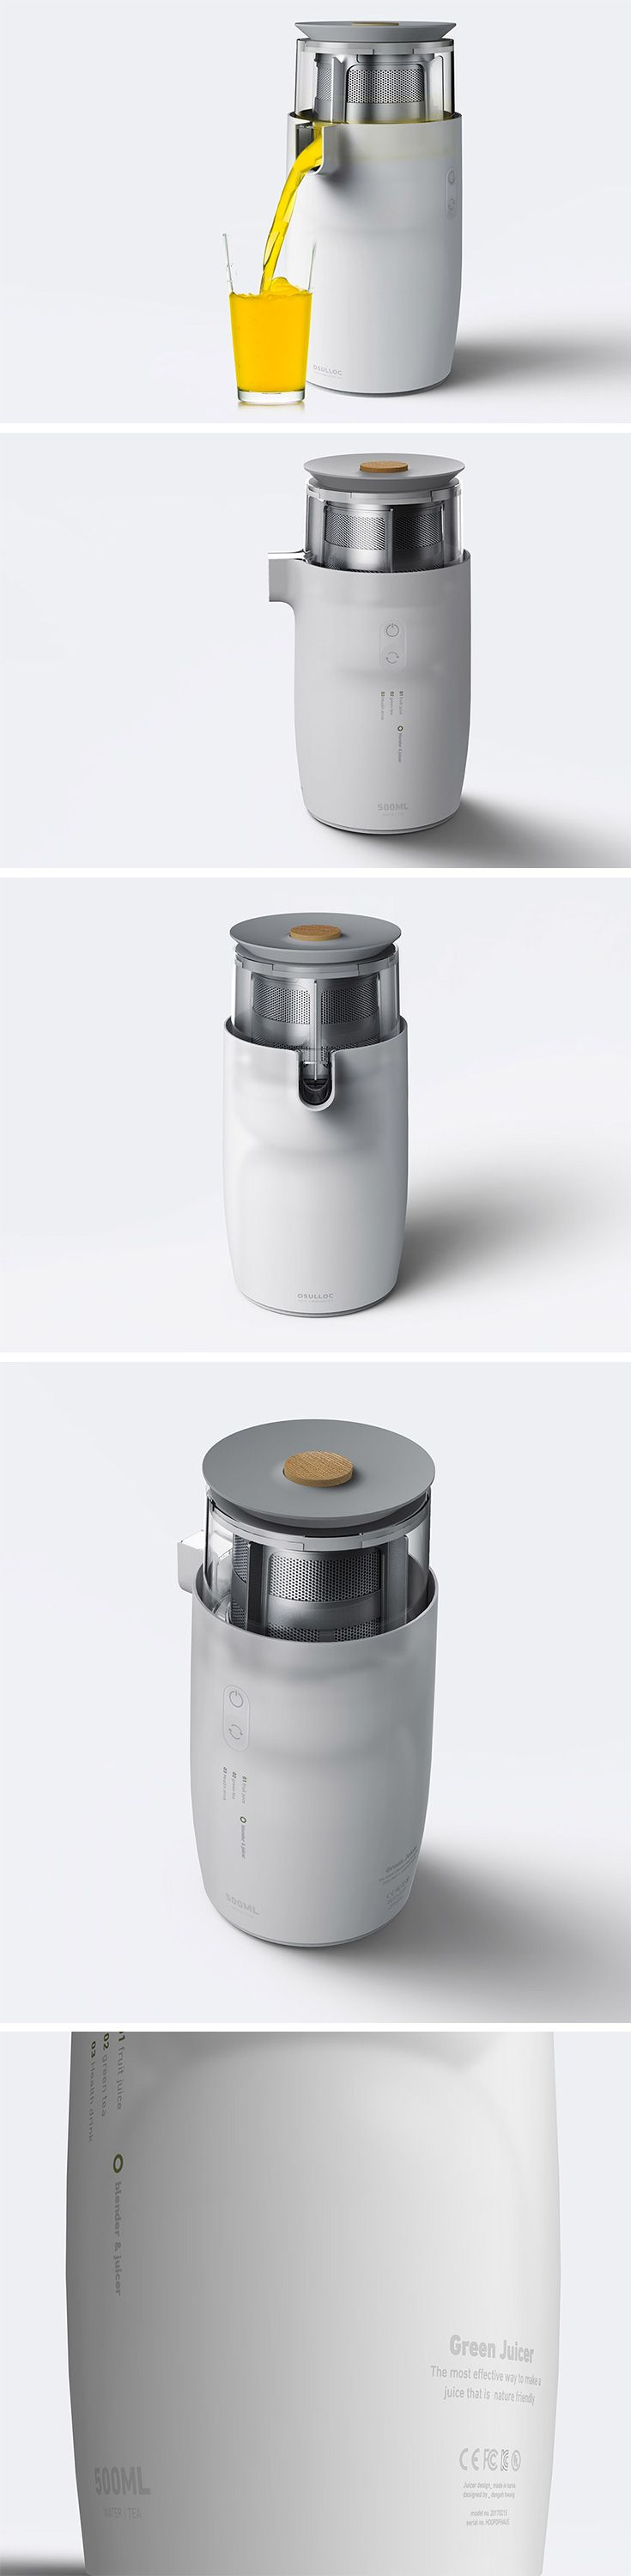 What if the Osulloc brand, known for their green tea treats, made a juicer? This concept explores that very question. Simply drop in your desired veggies or fruits and turn on the tap to pour a fresh glass.